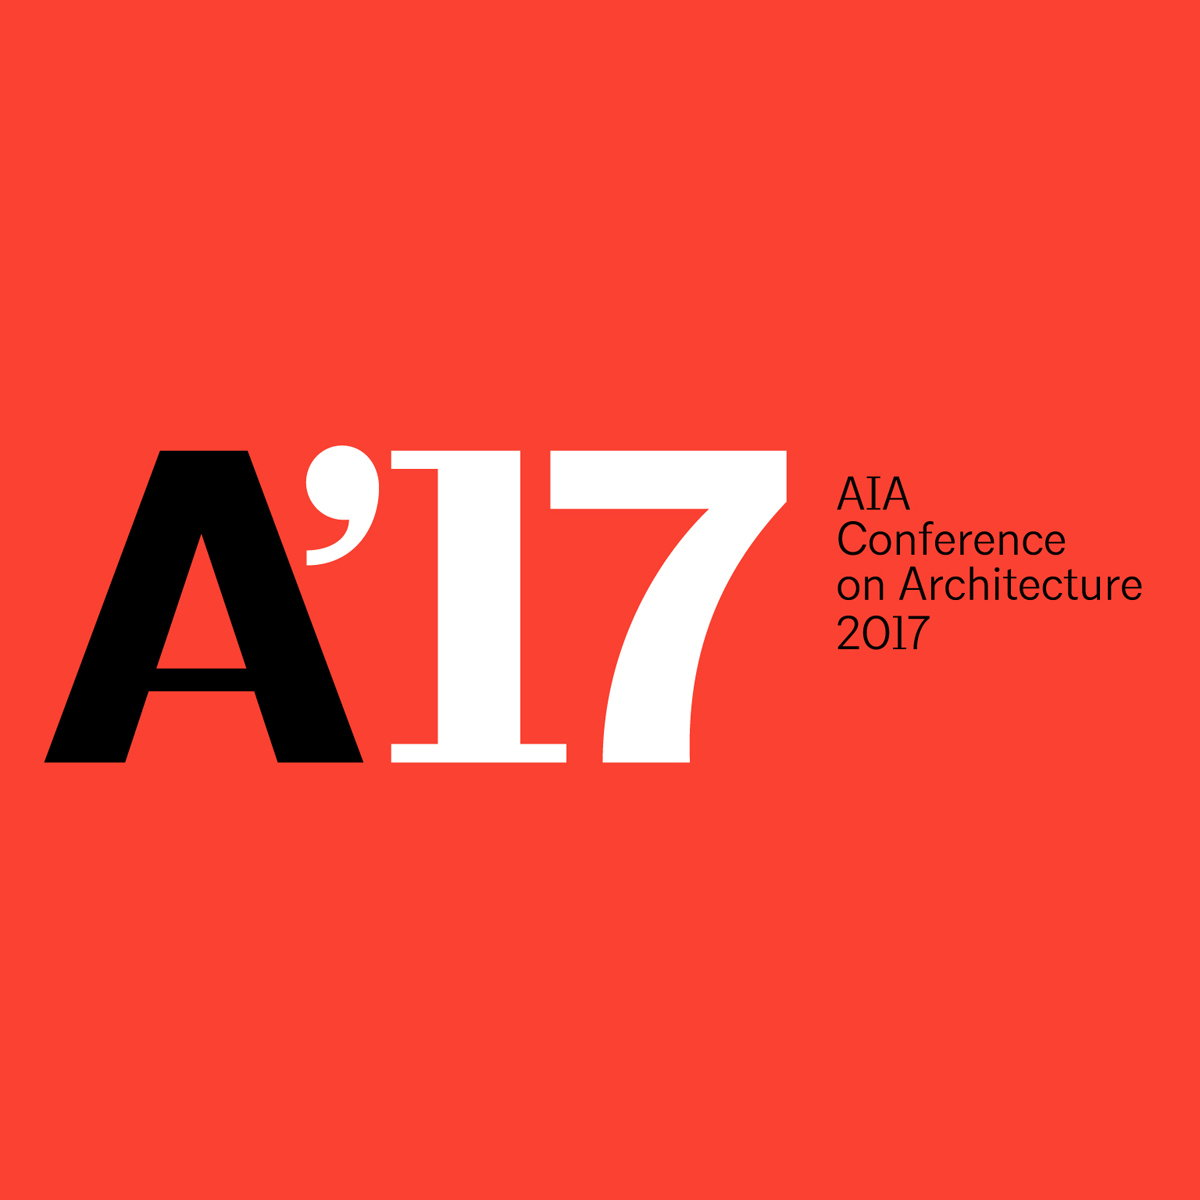 AIA Conference on Architecture 2017